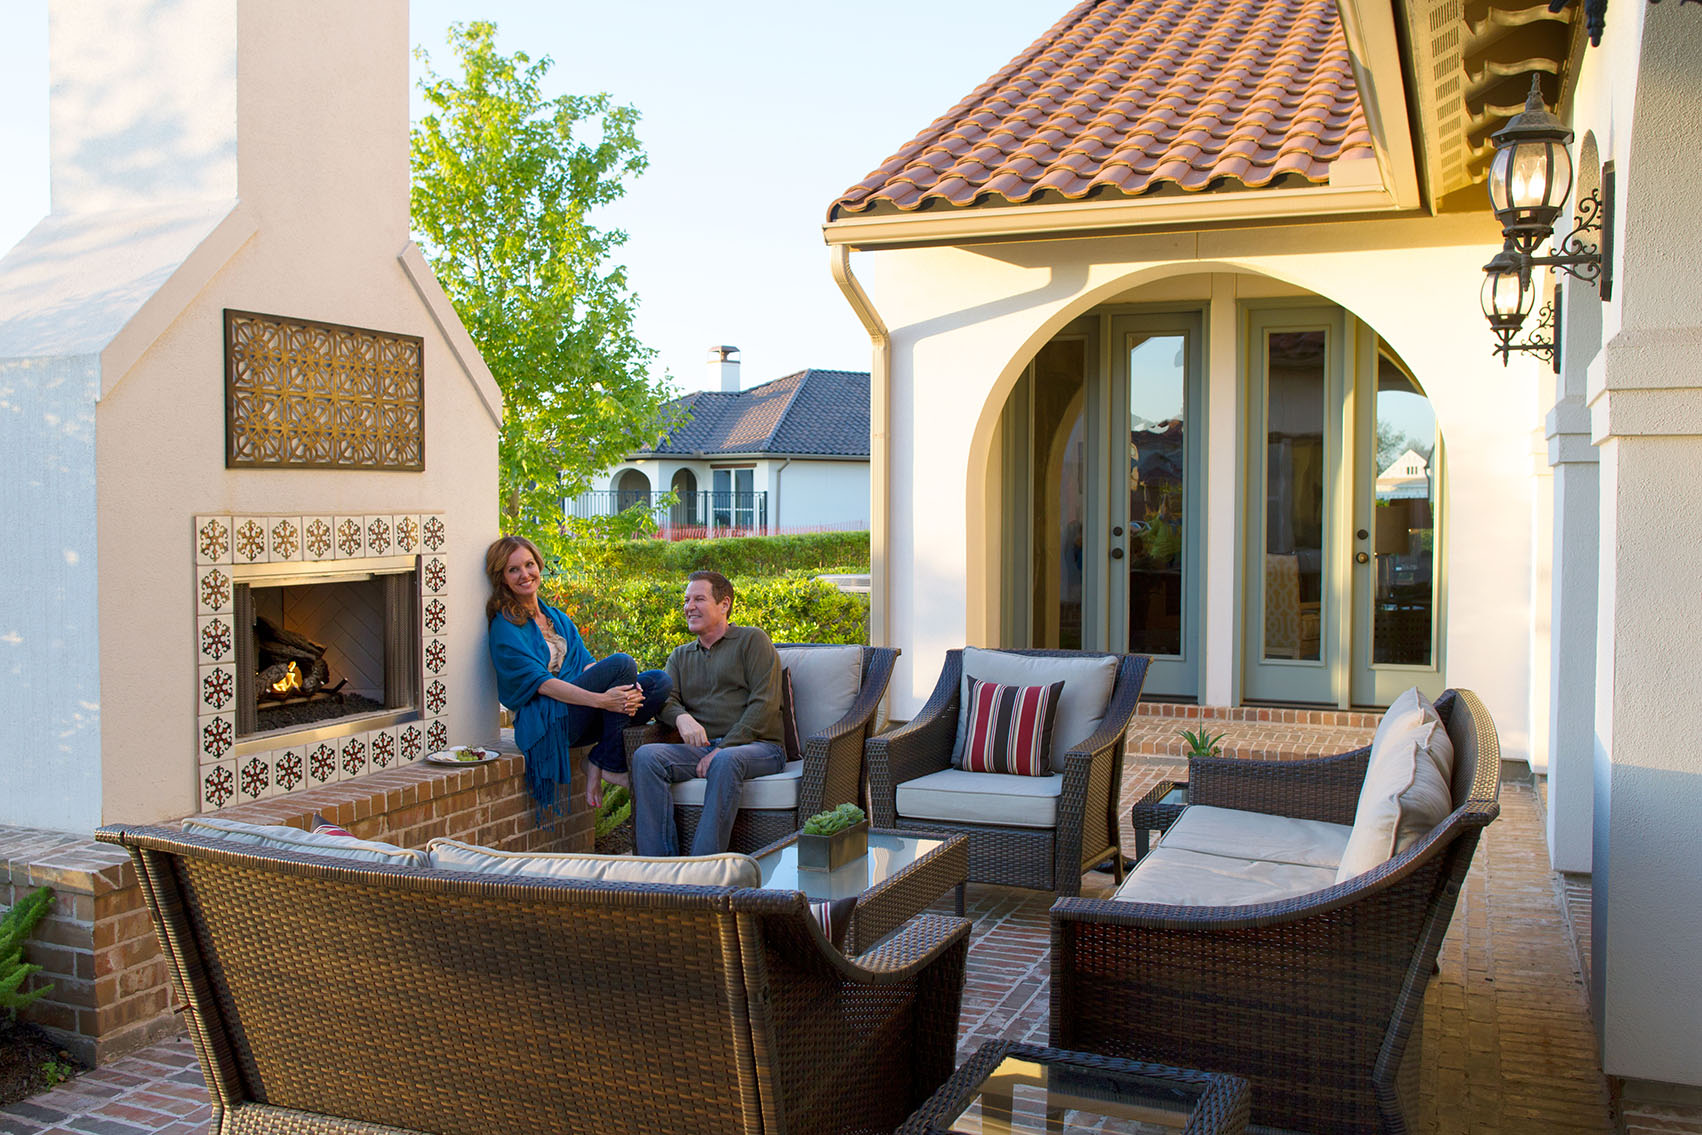 The Home Builder Offers Signature Patio Style Living In Communities Across  The Greater Houston Area.